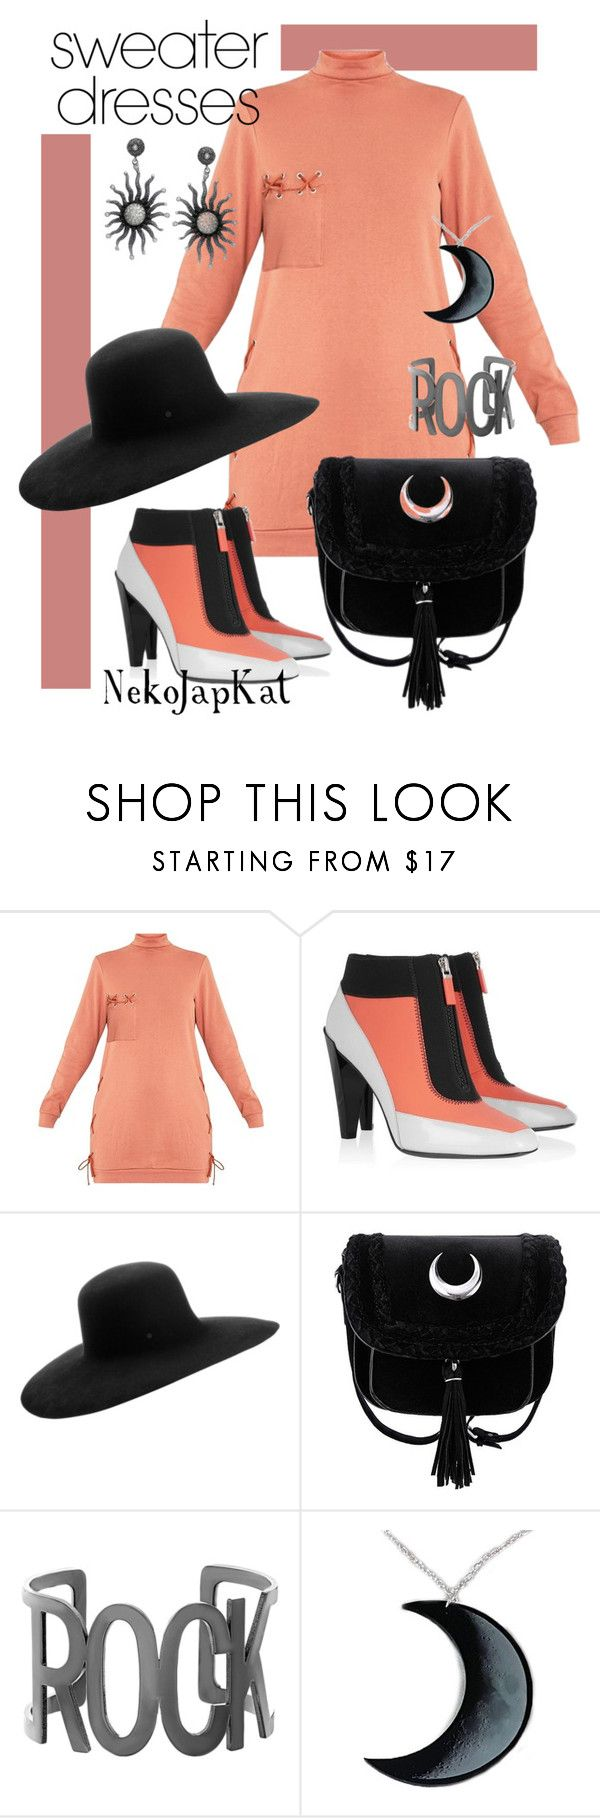 """""""sweraterdress2"""" by neko-m-tucker-smith ❤ liked on Polyvore featuring Kenzo, Maison Michel, Steve Madden and Curiology"""